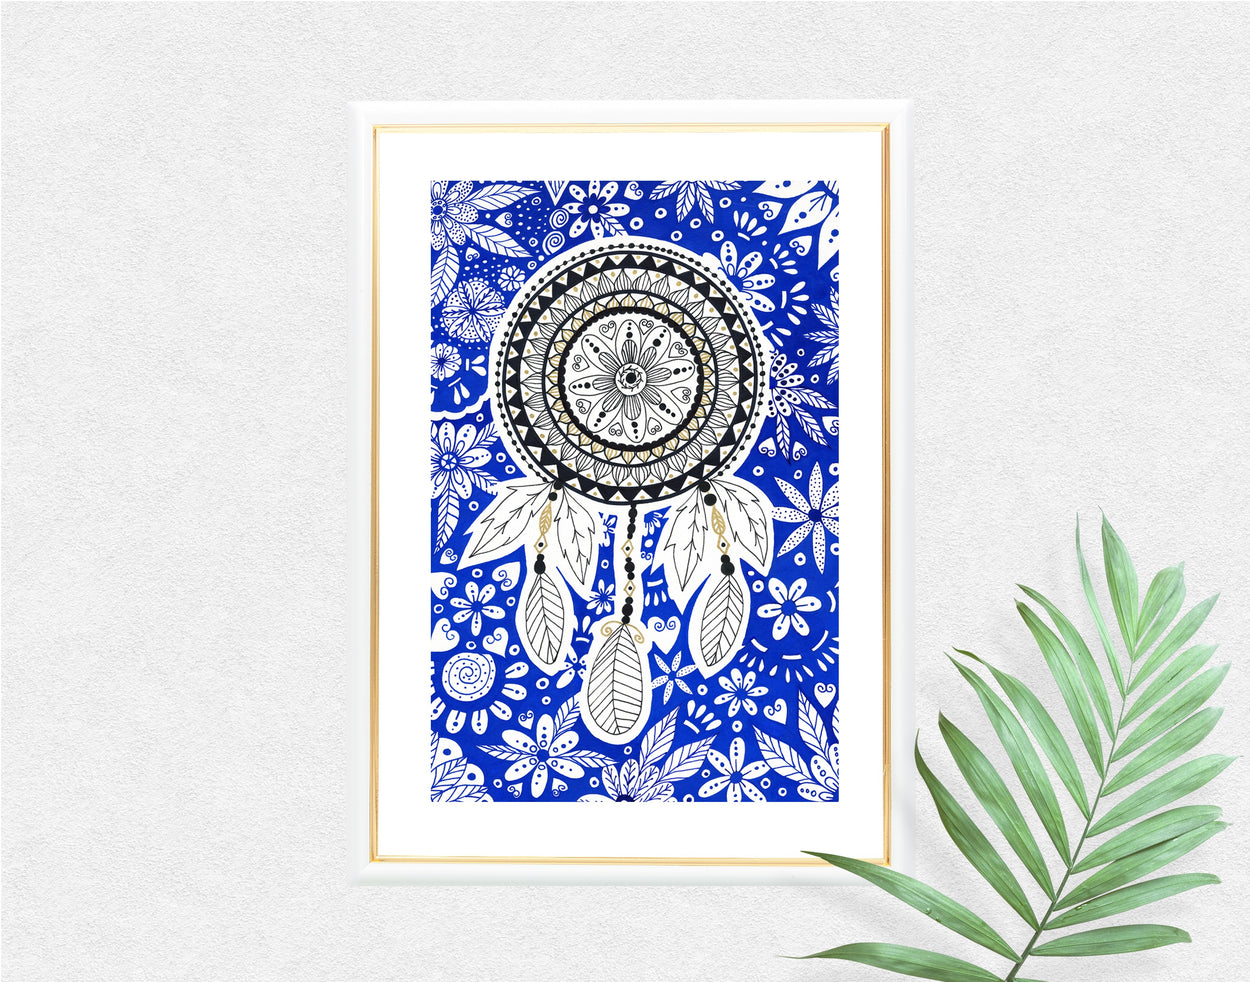 Prints - Dreamcatchers